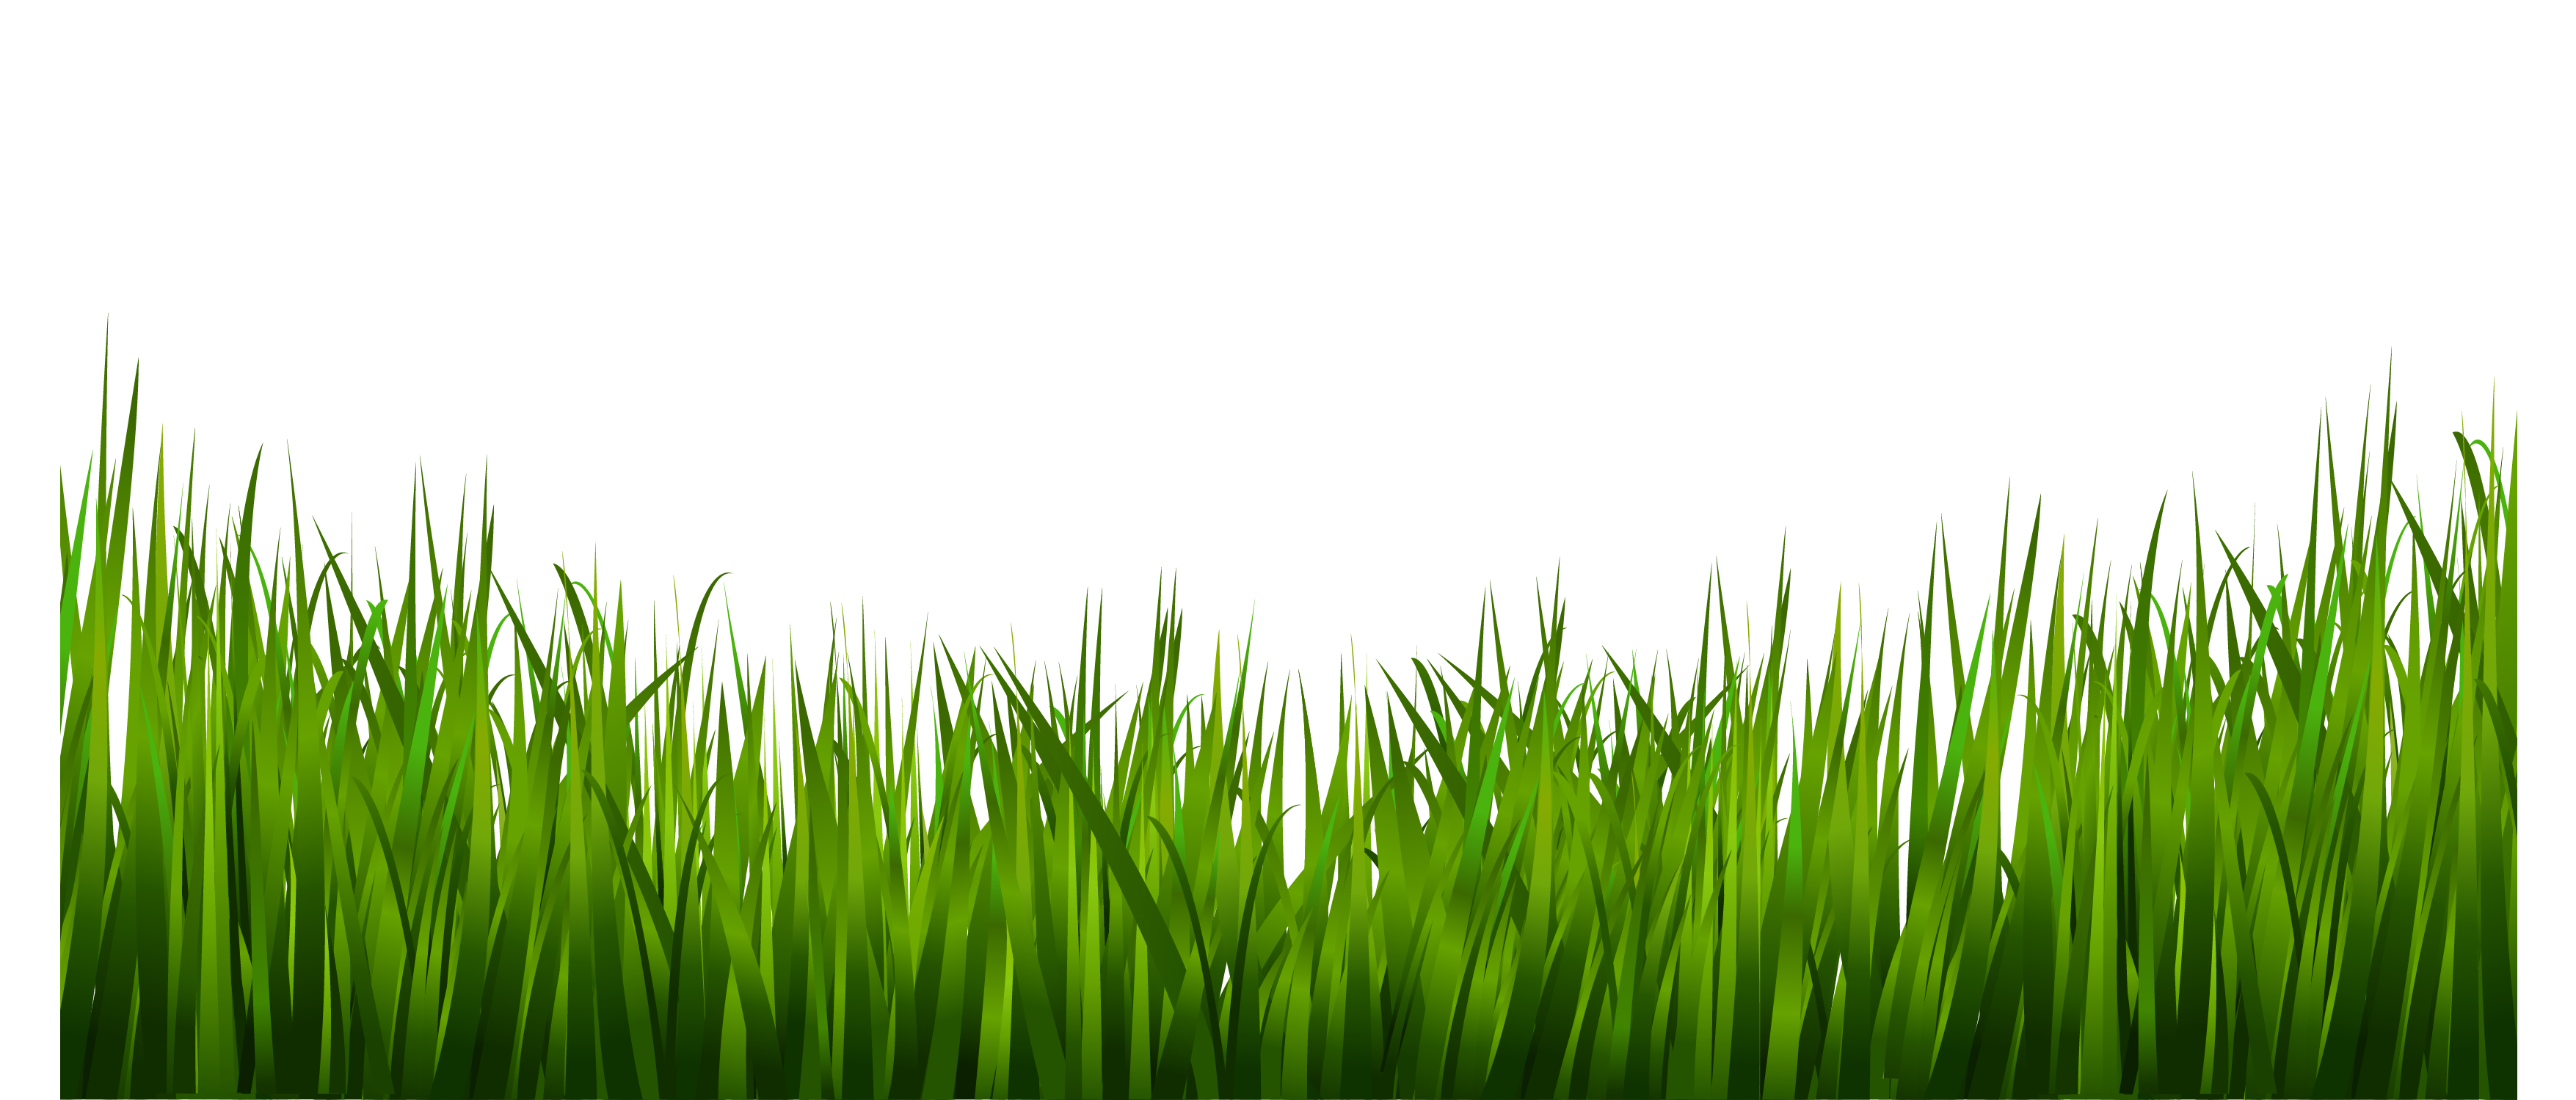 grass-png-images-live-ornament-tool-png-only-4